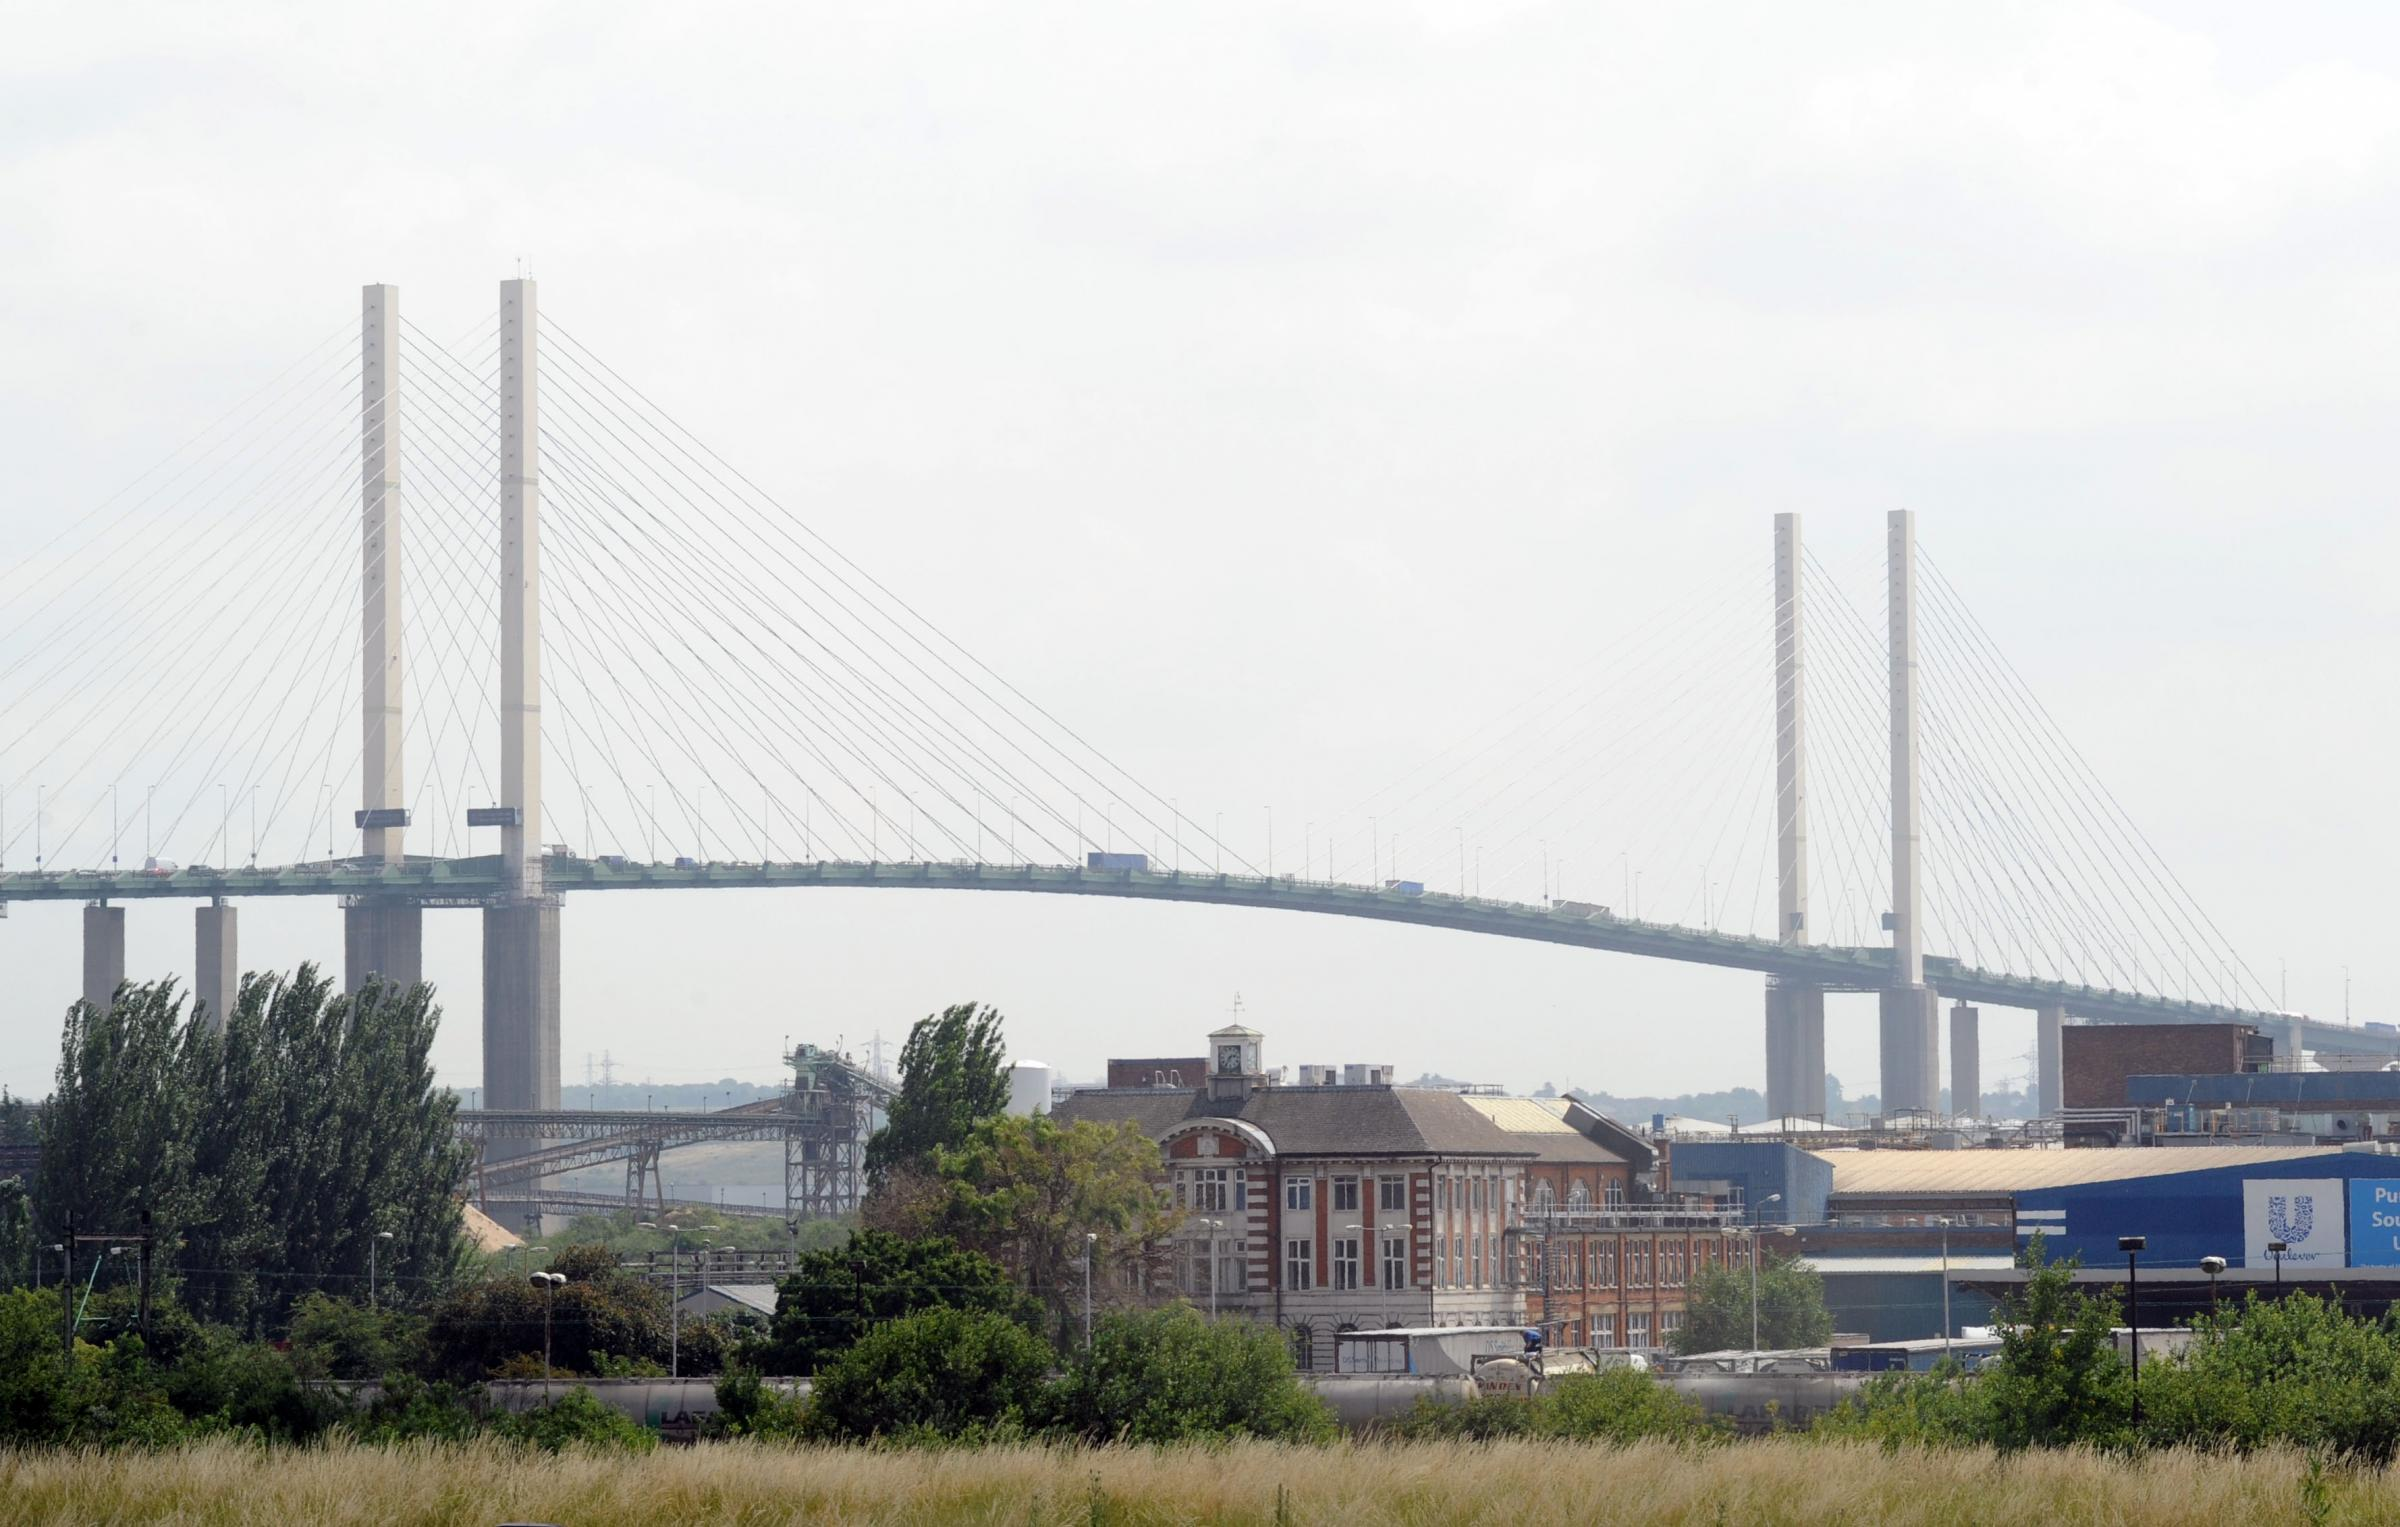 Disagreements over Dartford Crossing after thousands get stranded in high winds